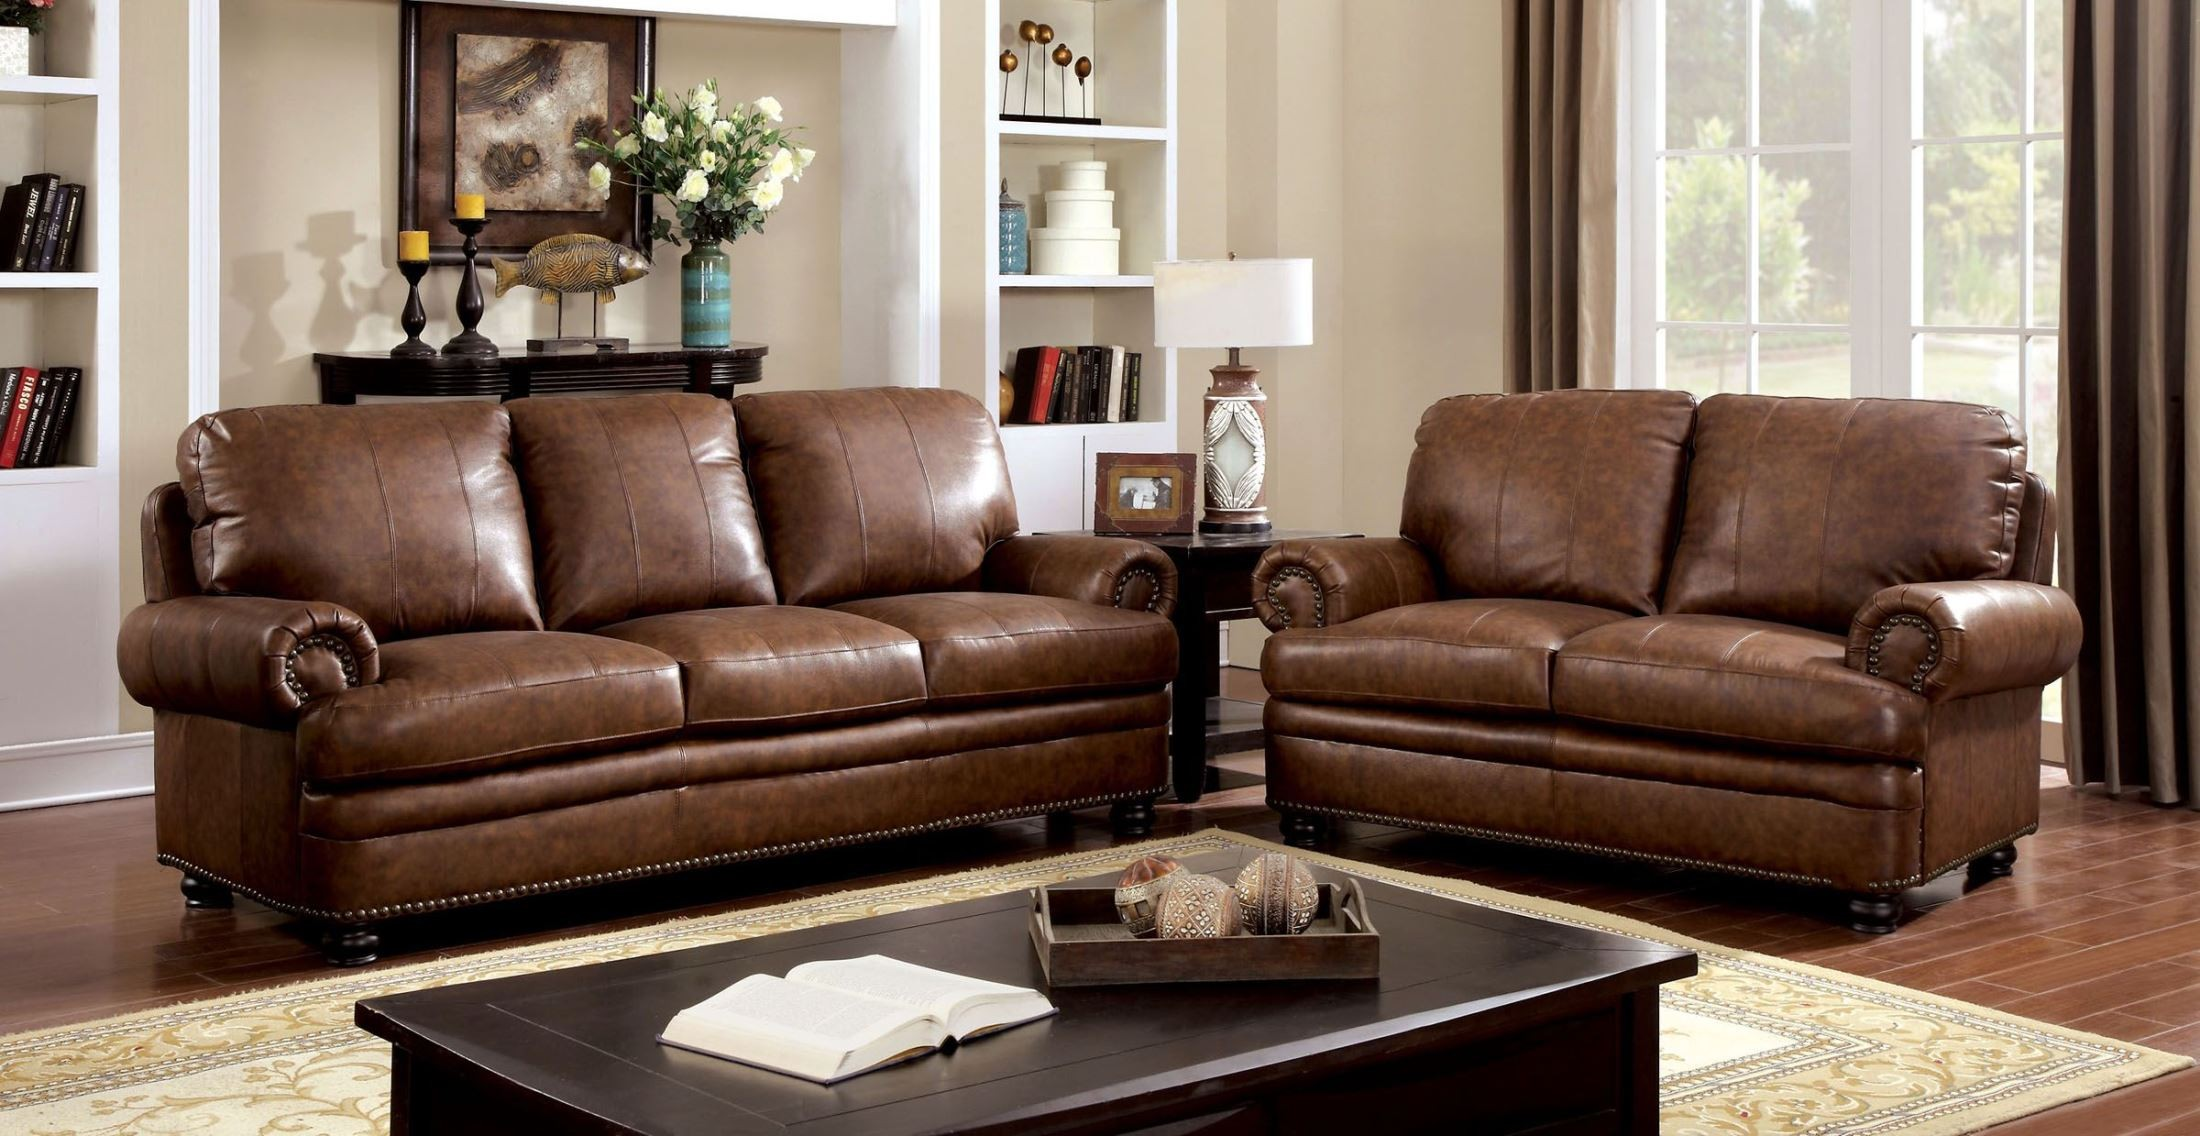 rheinhardt top grain leather living room set from furniture of